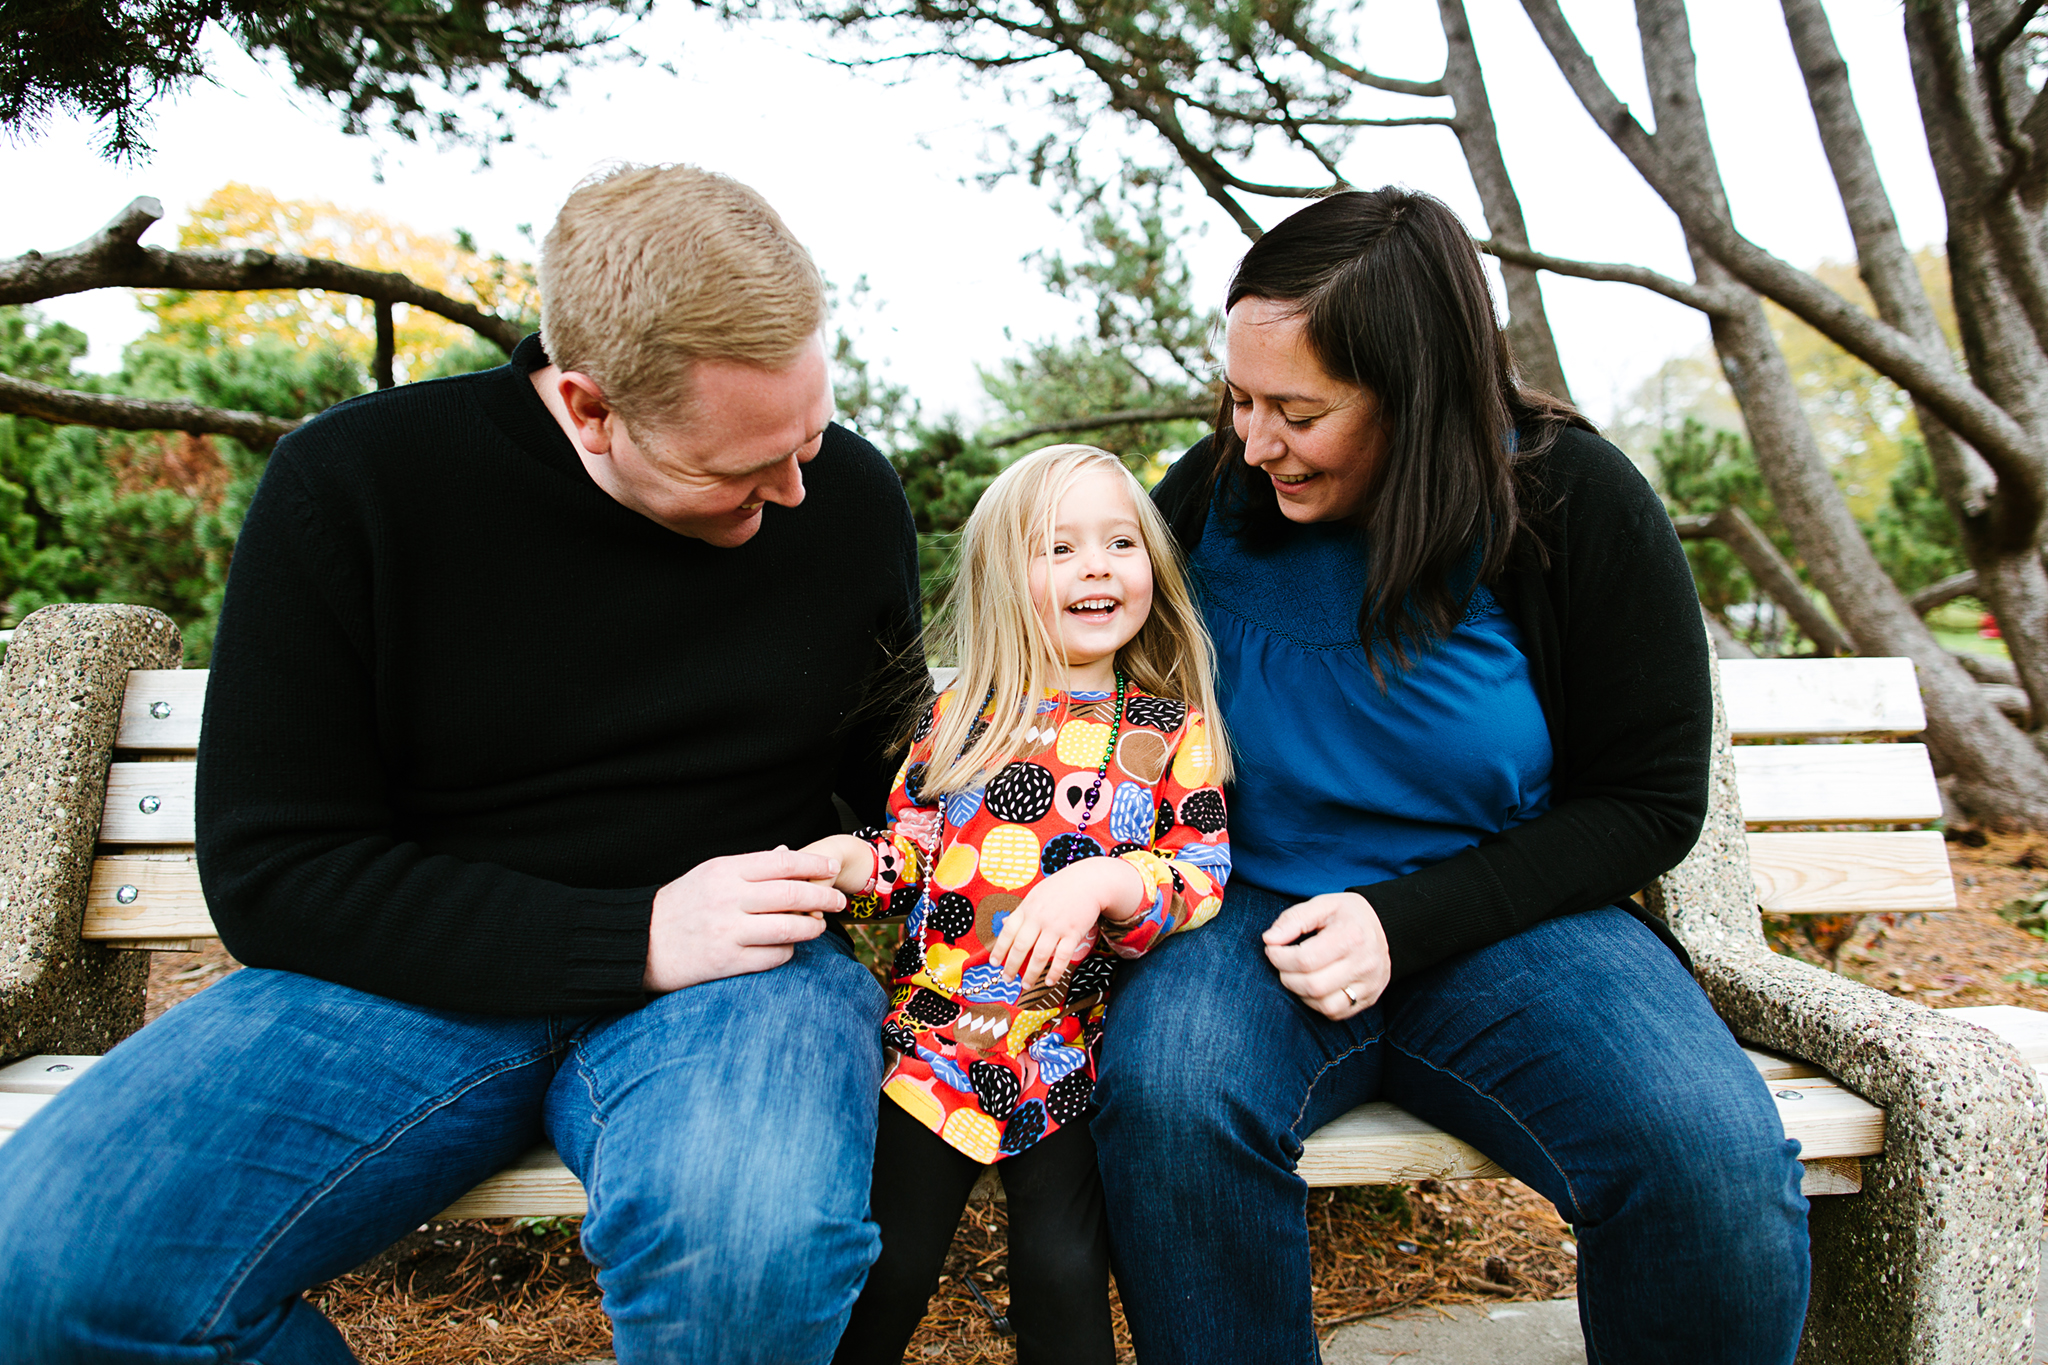 Fall Family Photos at the Minneapolis Peace Garden by Lake Harriet